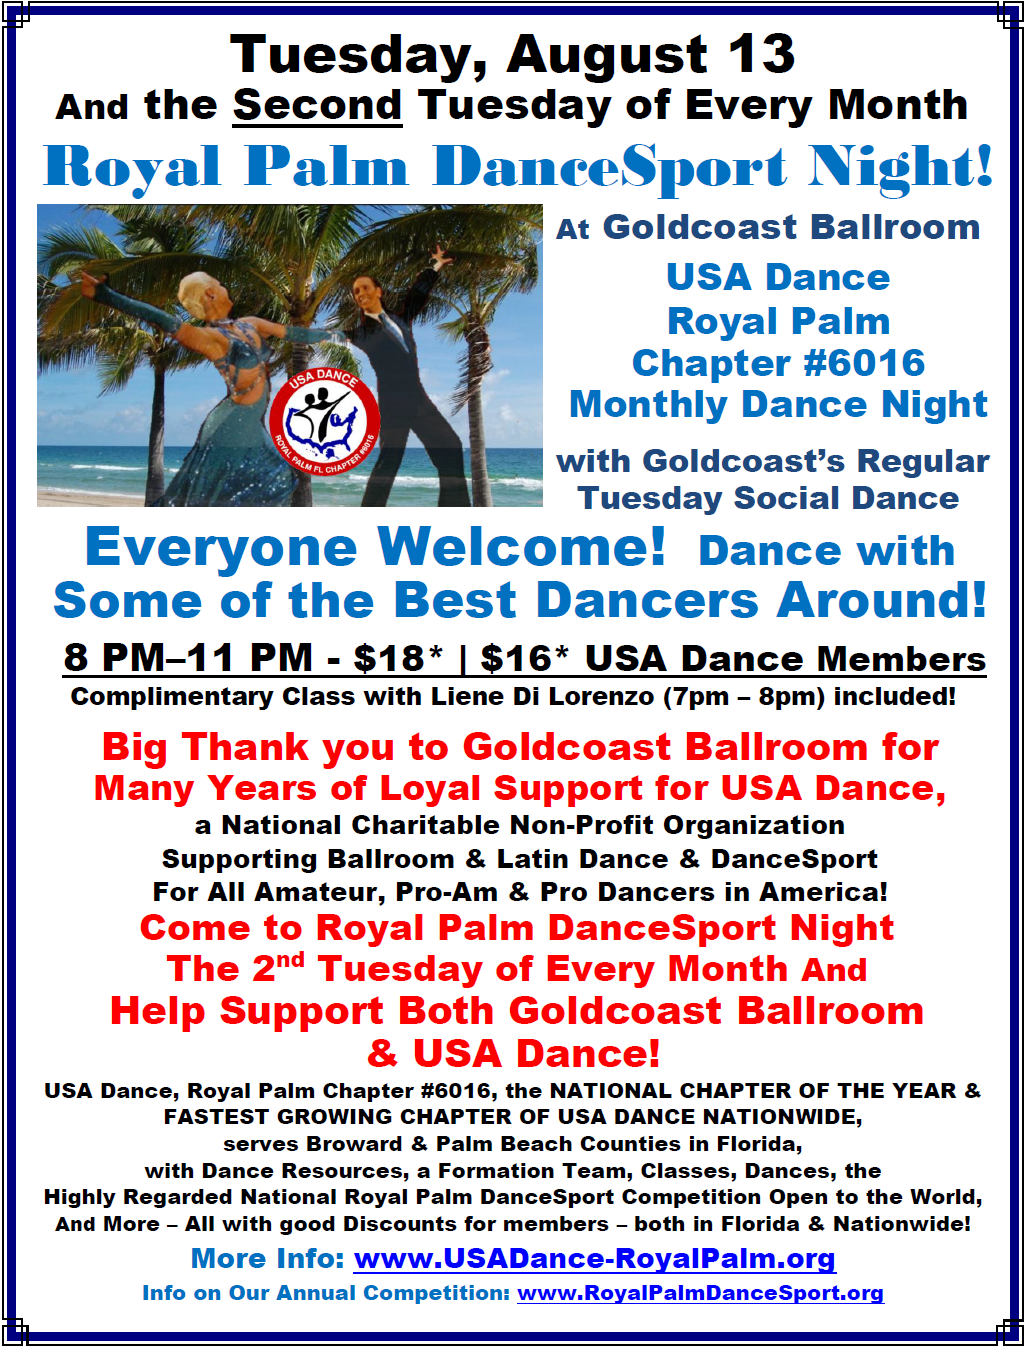 Tuesday, August 13 & 2nd Tuesday Every Month - Royal Palm DanceSport Night!